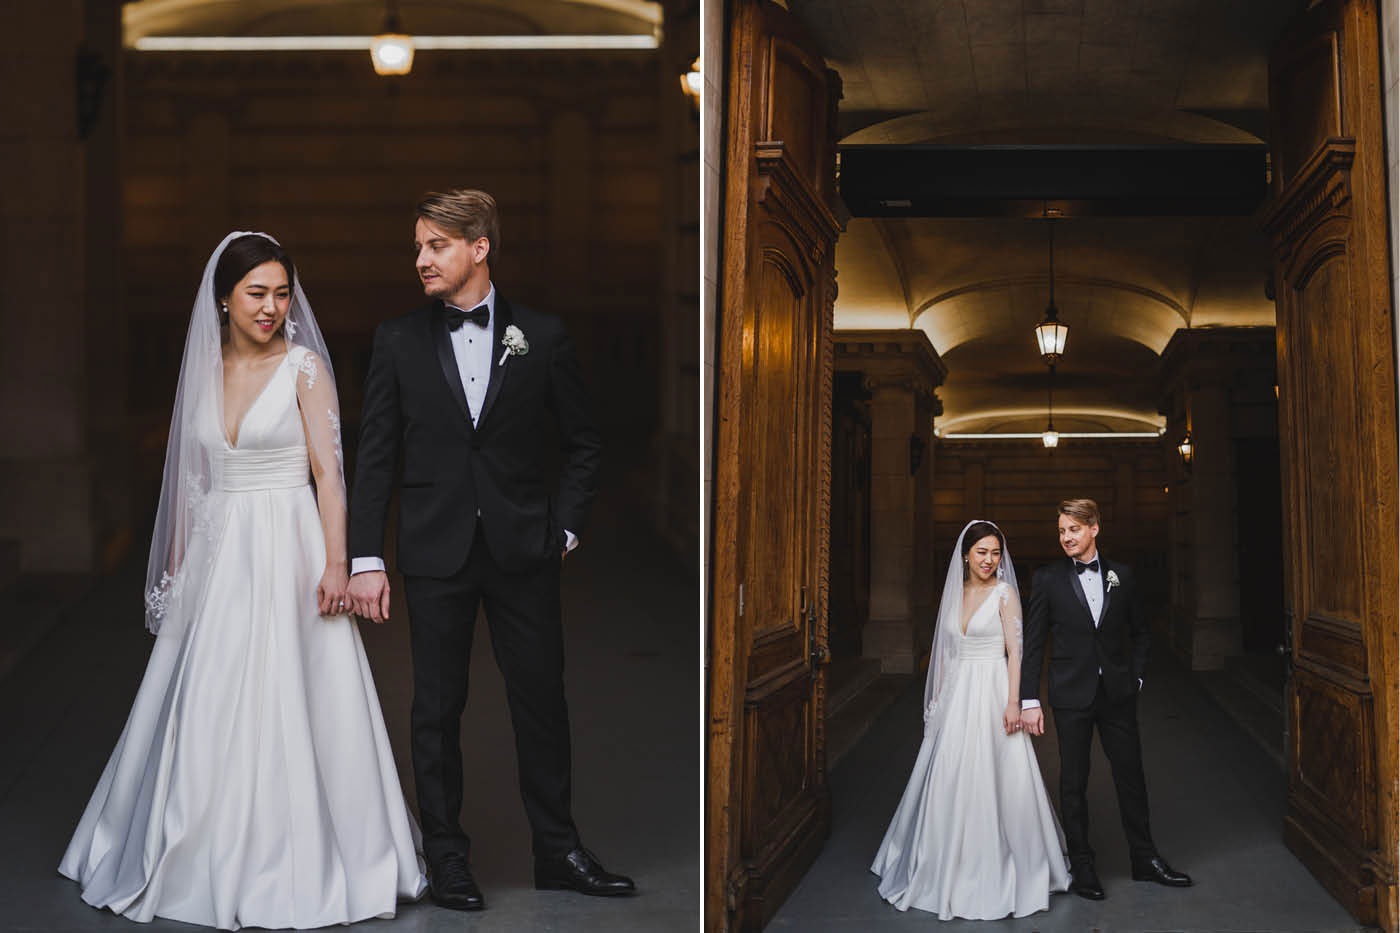 bride and groom portrait at the James Burden Kahn Mansion by Weddings by Hanel